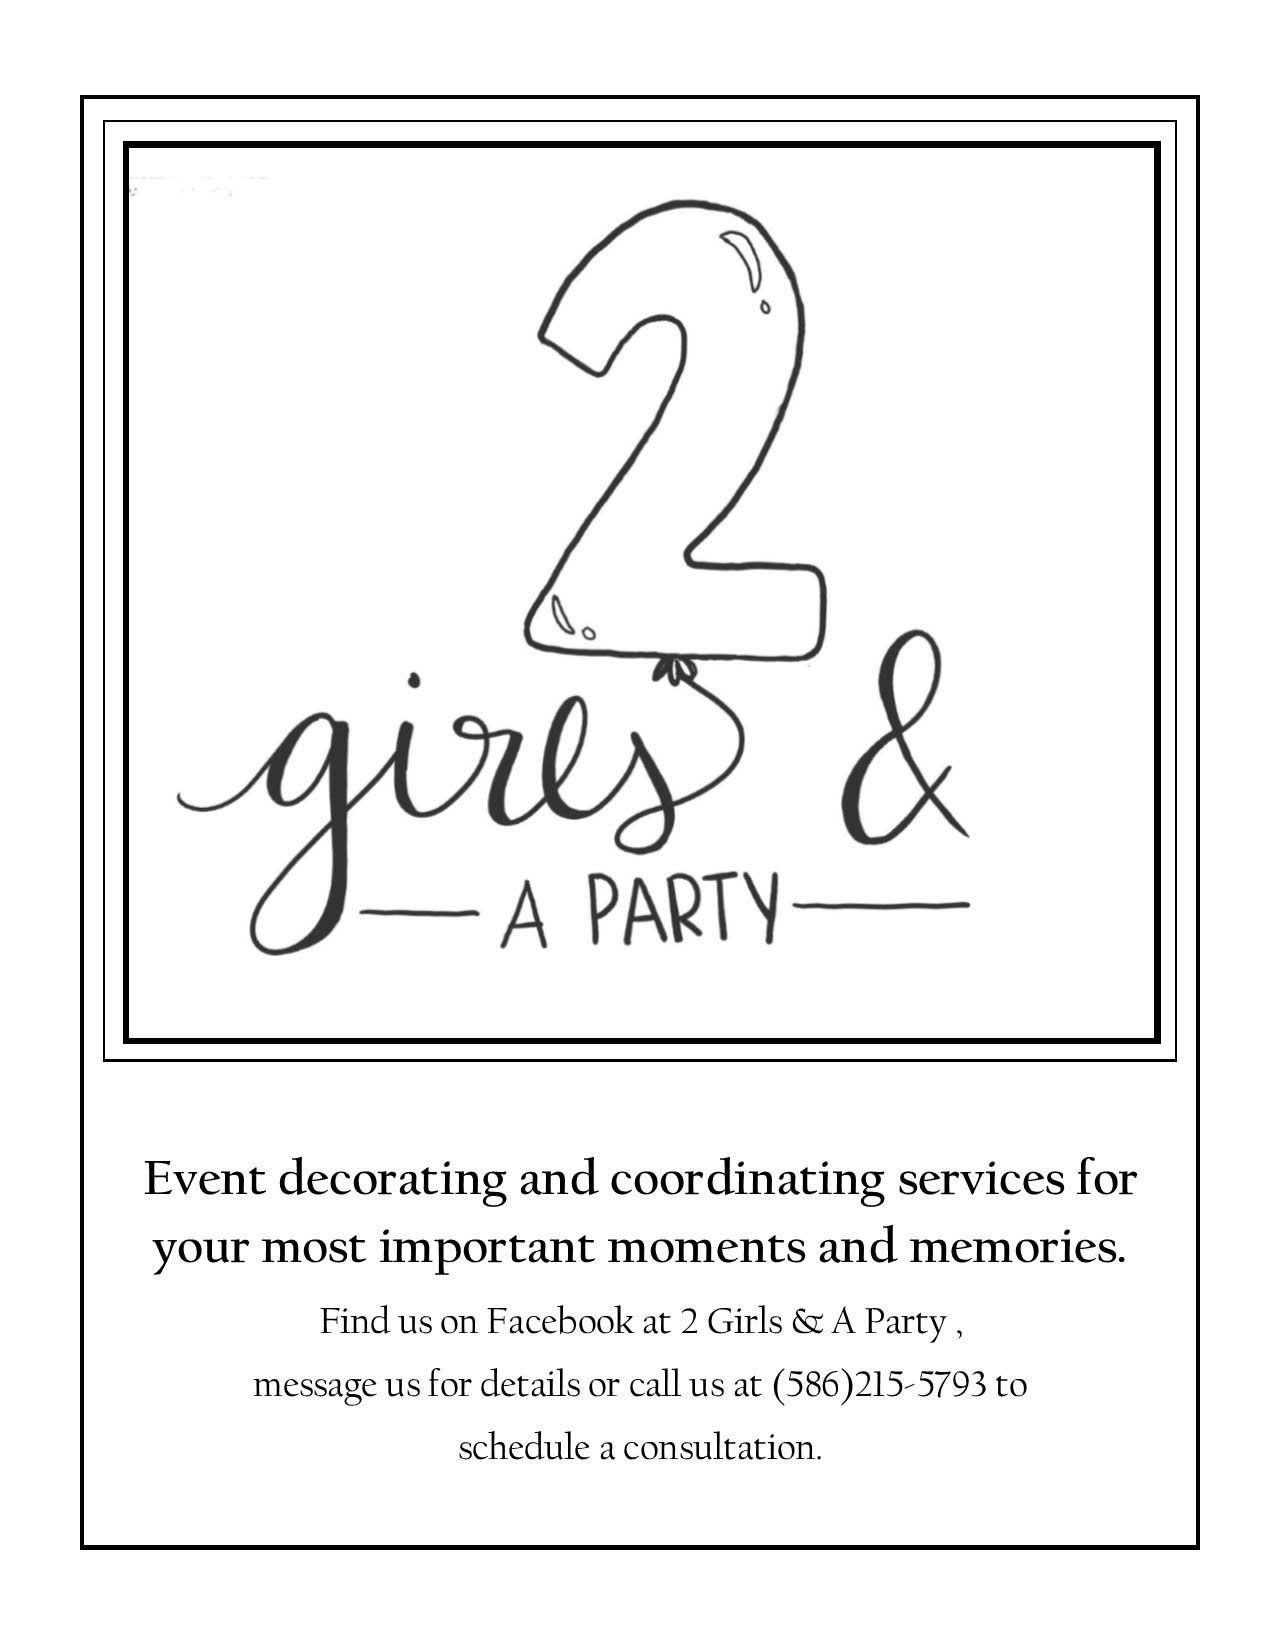 Two Girls and a Party Logo